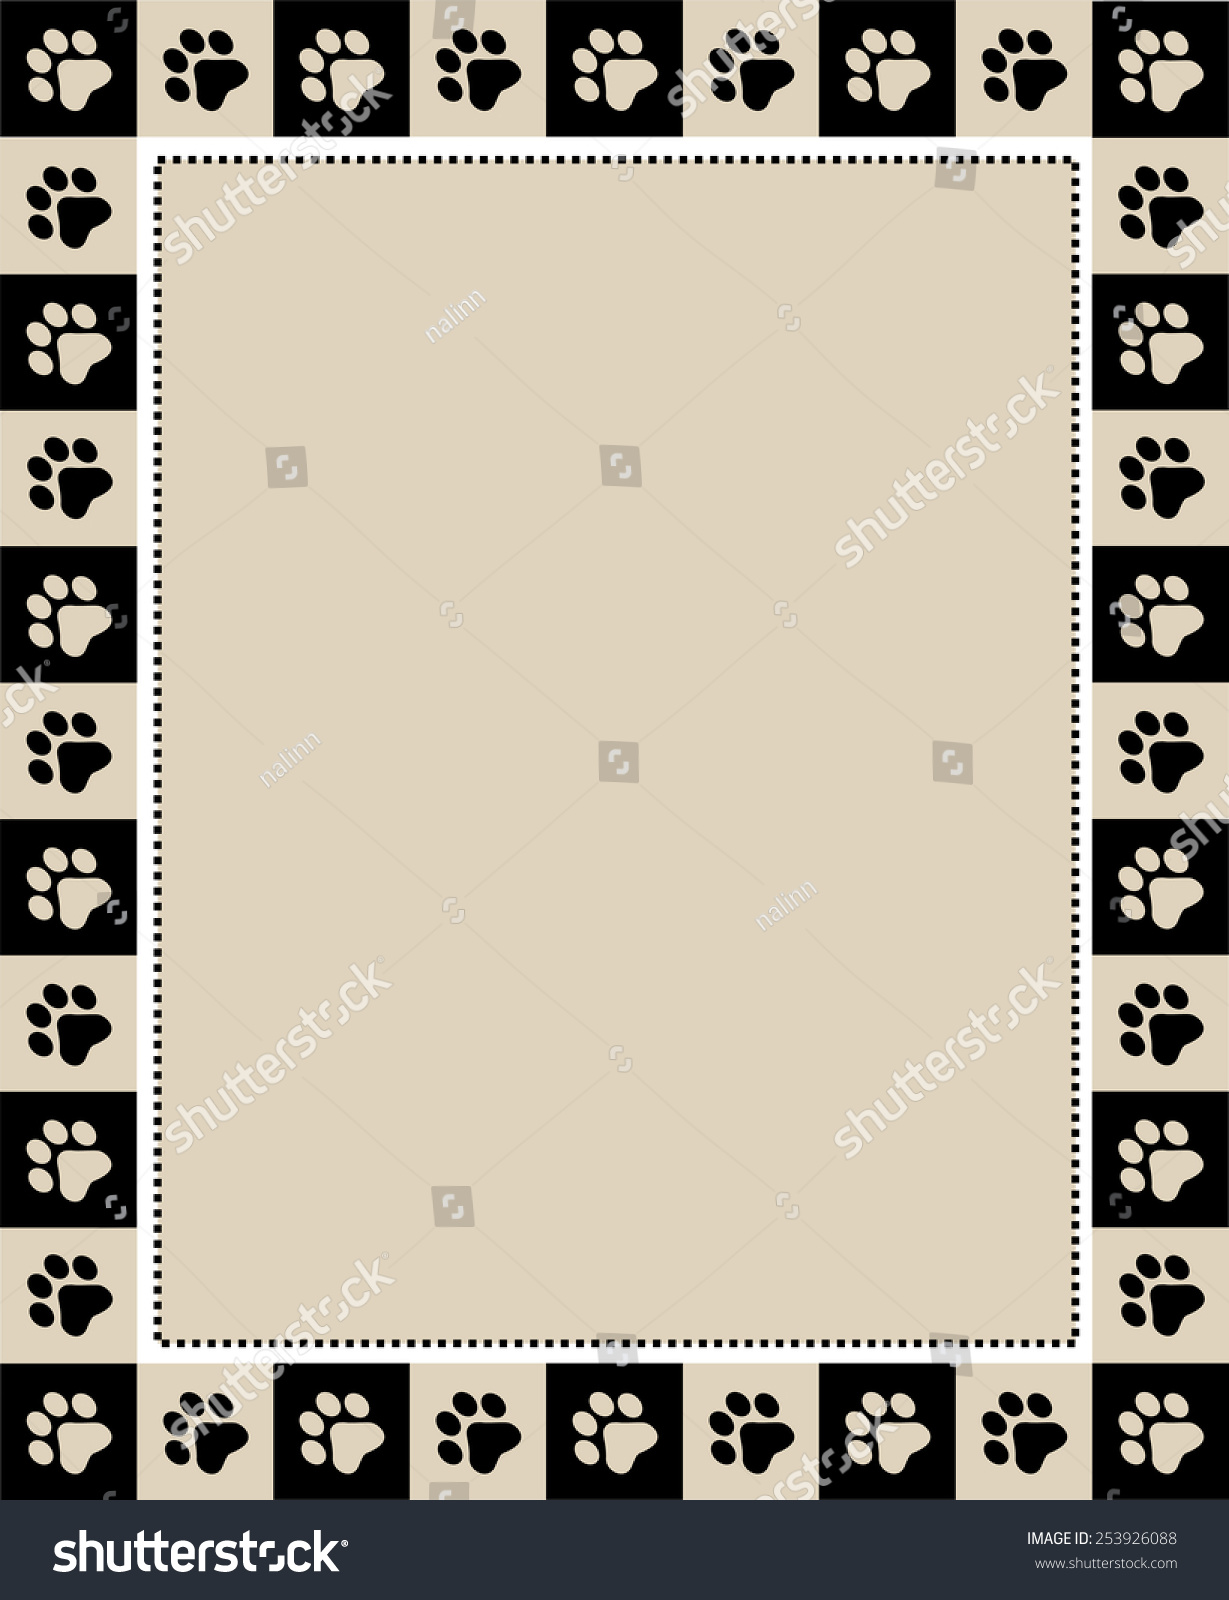 Cute Pet Lovers Dog Cat Lover Stock Vector Royalty Free 253926088